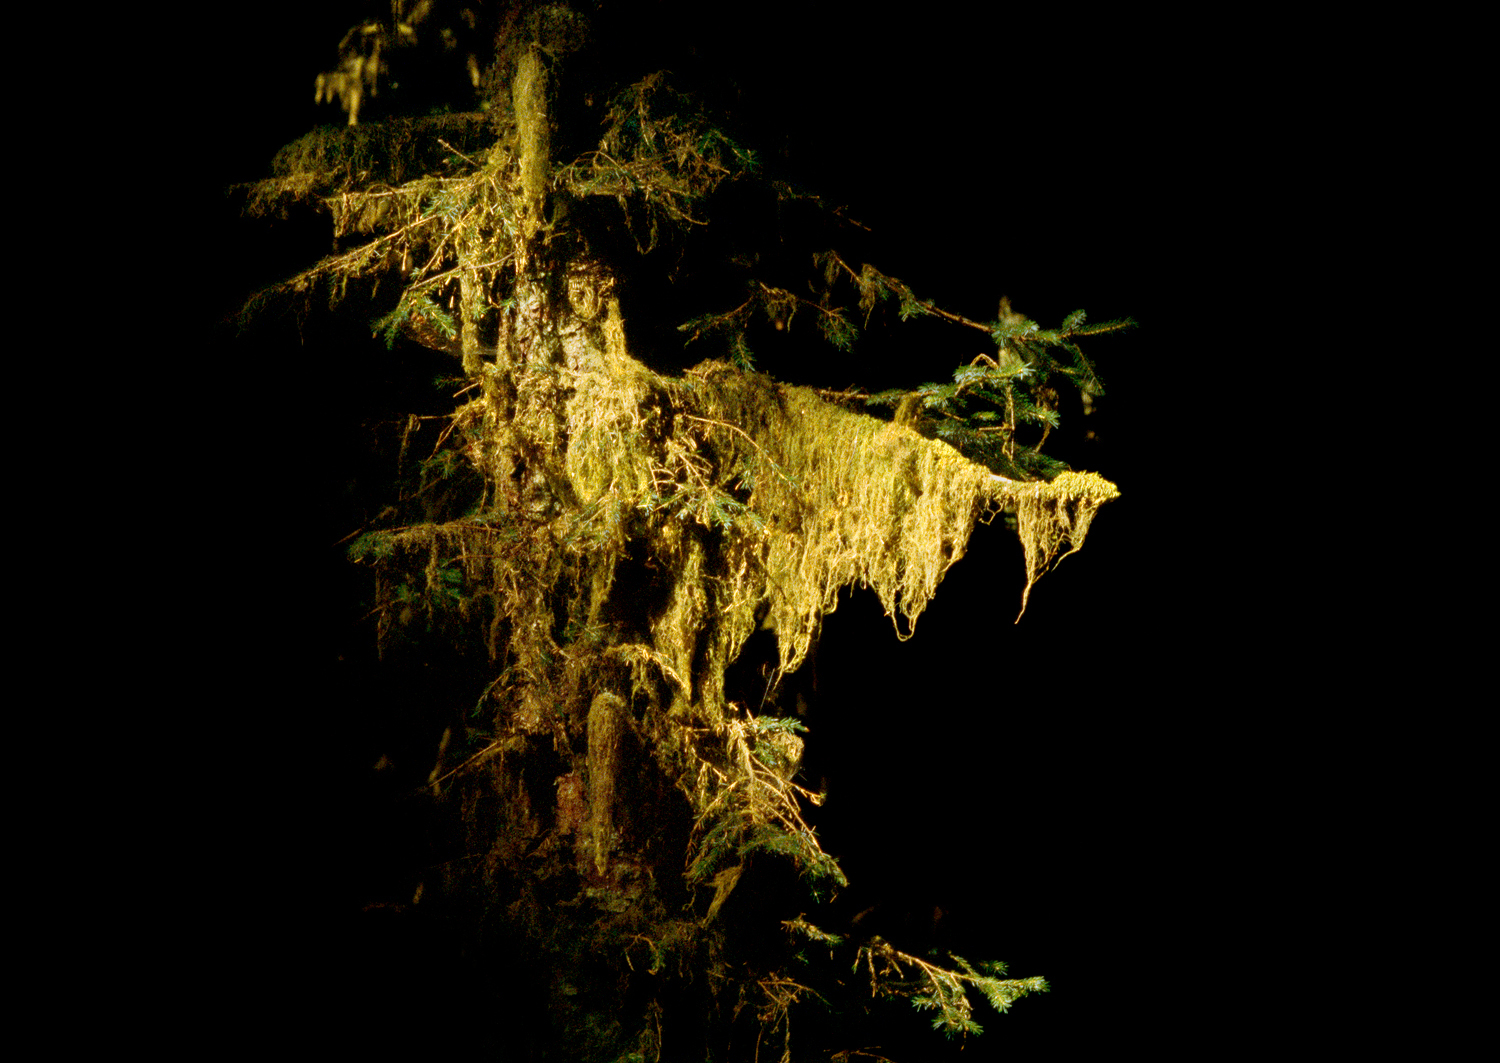 Illuminated Cat-Tail Moss no. 2